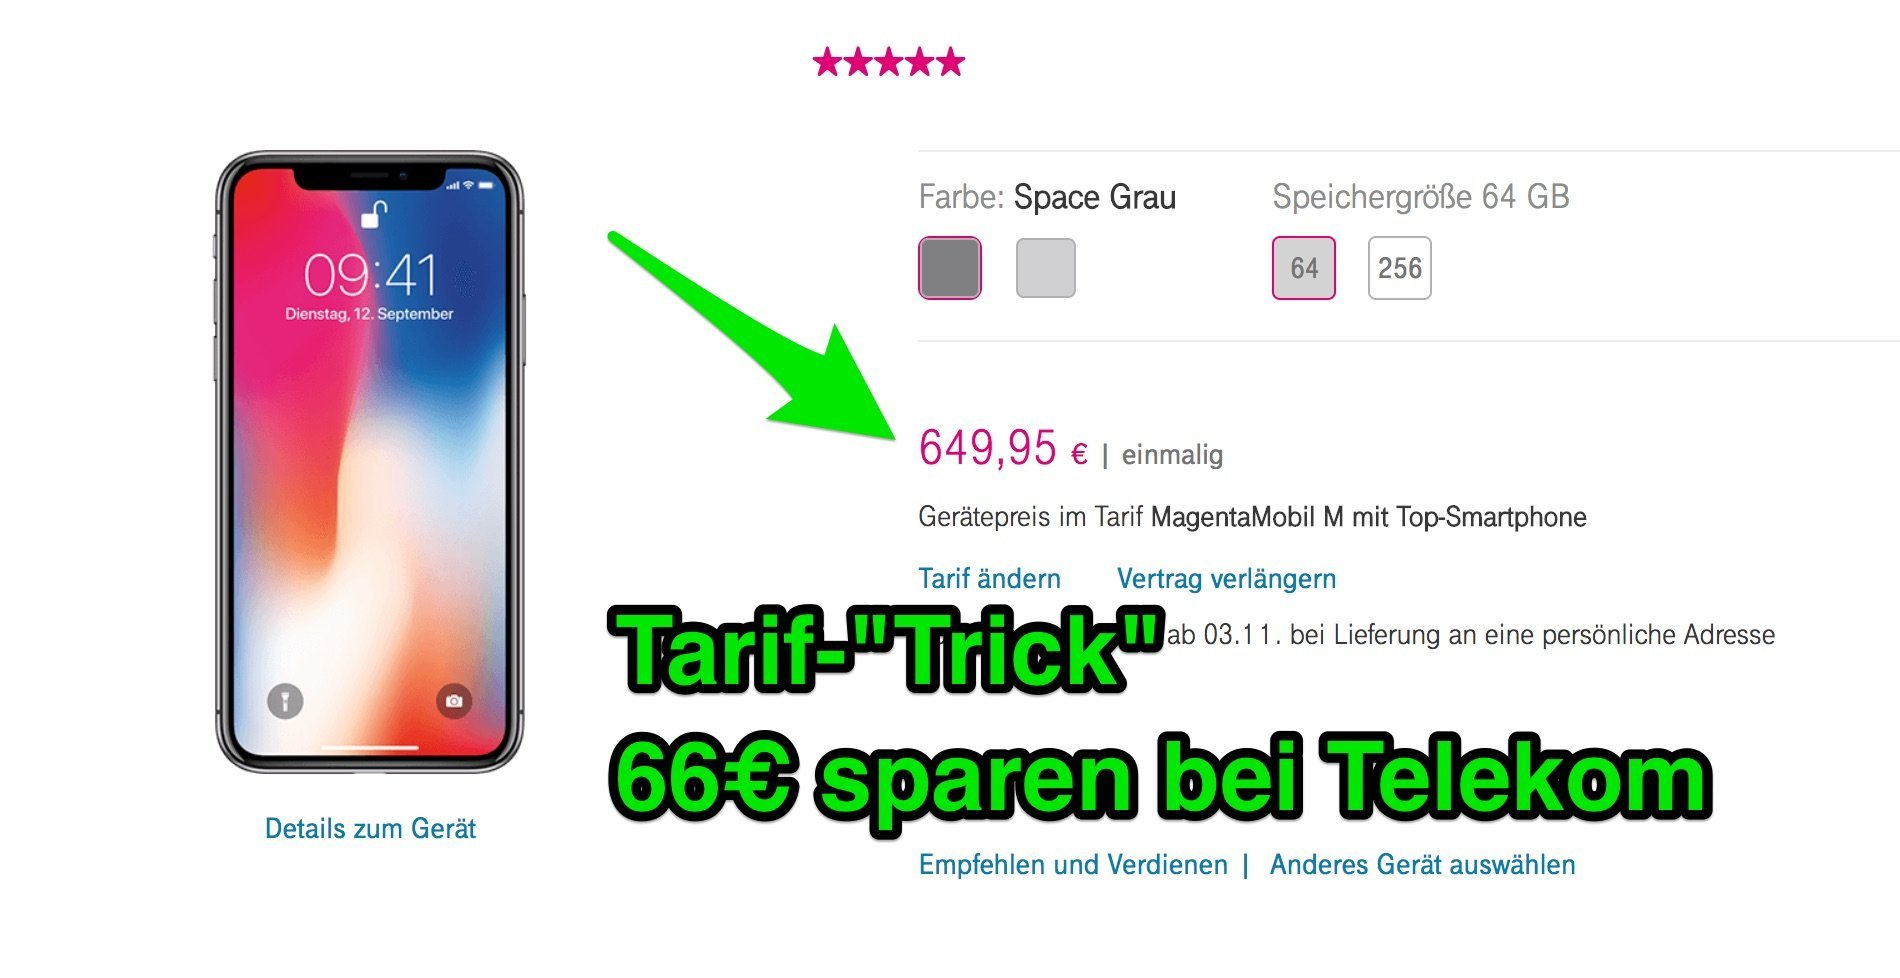 telekom iphone x ohne top smartphone tarif spart 66 euro. Black Bedroom Furniture Sets. Home Design Ideas